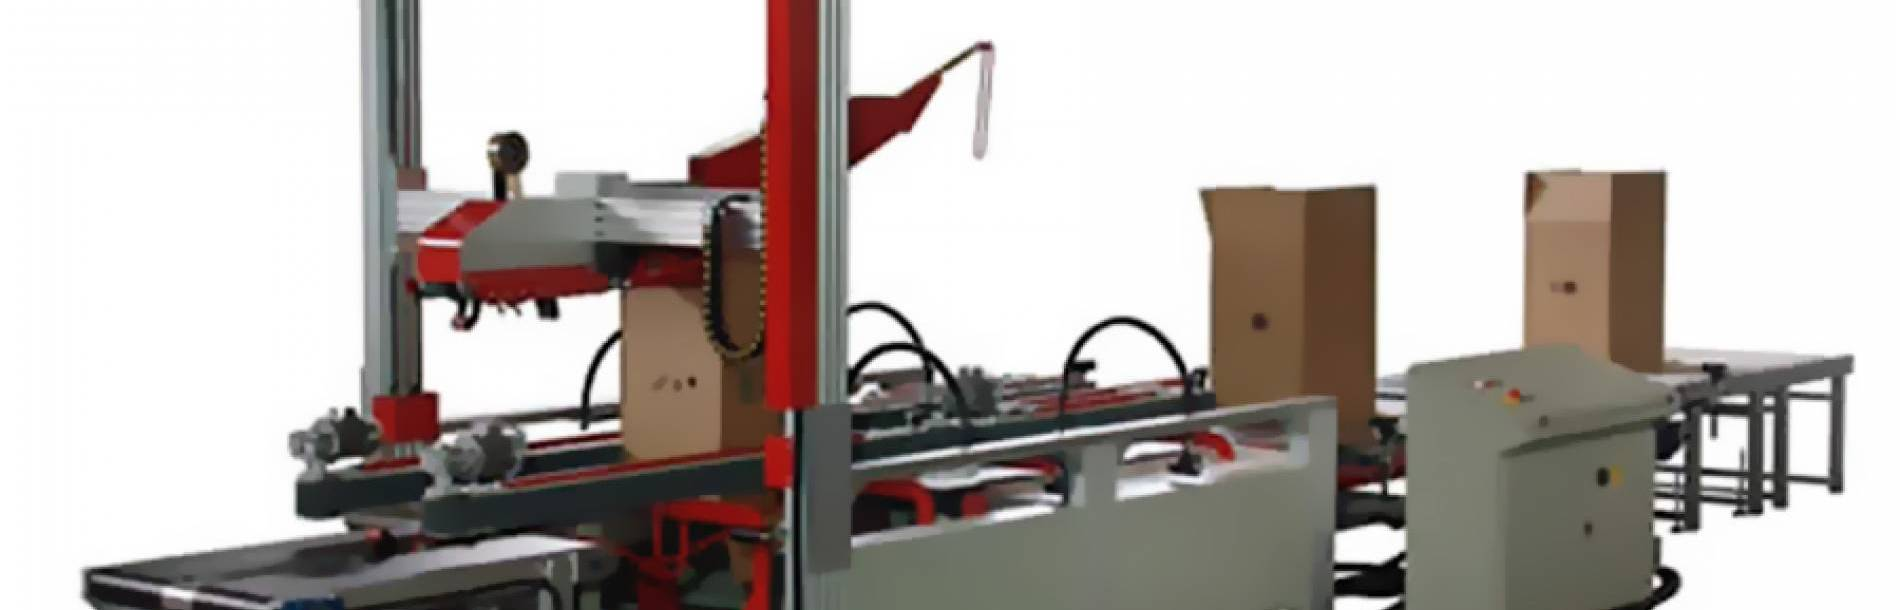 MASTERPACK - AUTOMATIC PACKAGING MACHINE (PATENTED BY US)